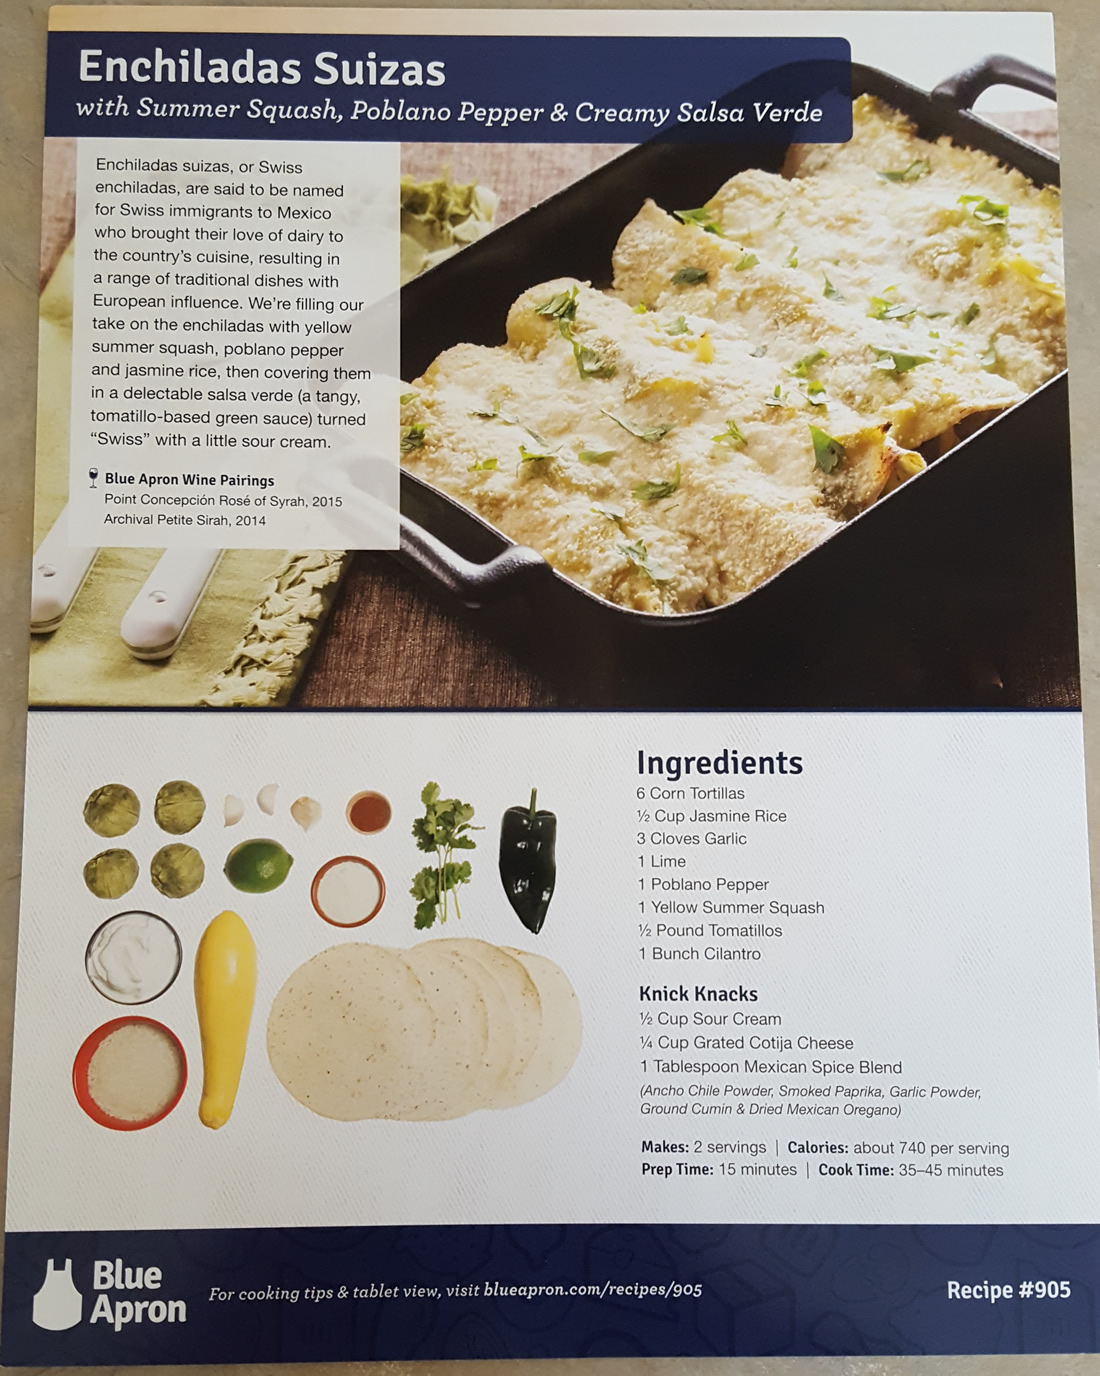 Blue apron recipes pdf dolapgnetband blue apron recipes pdf forumfinder Image collections